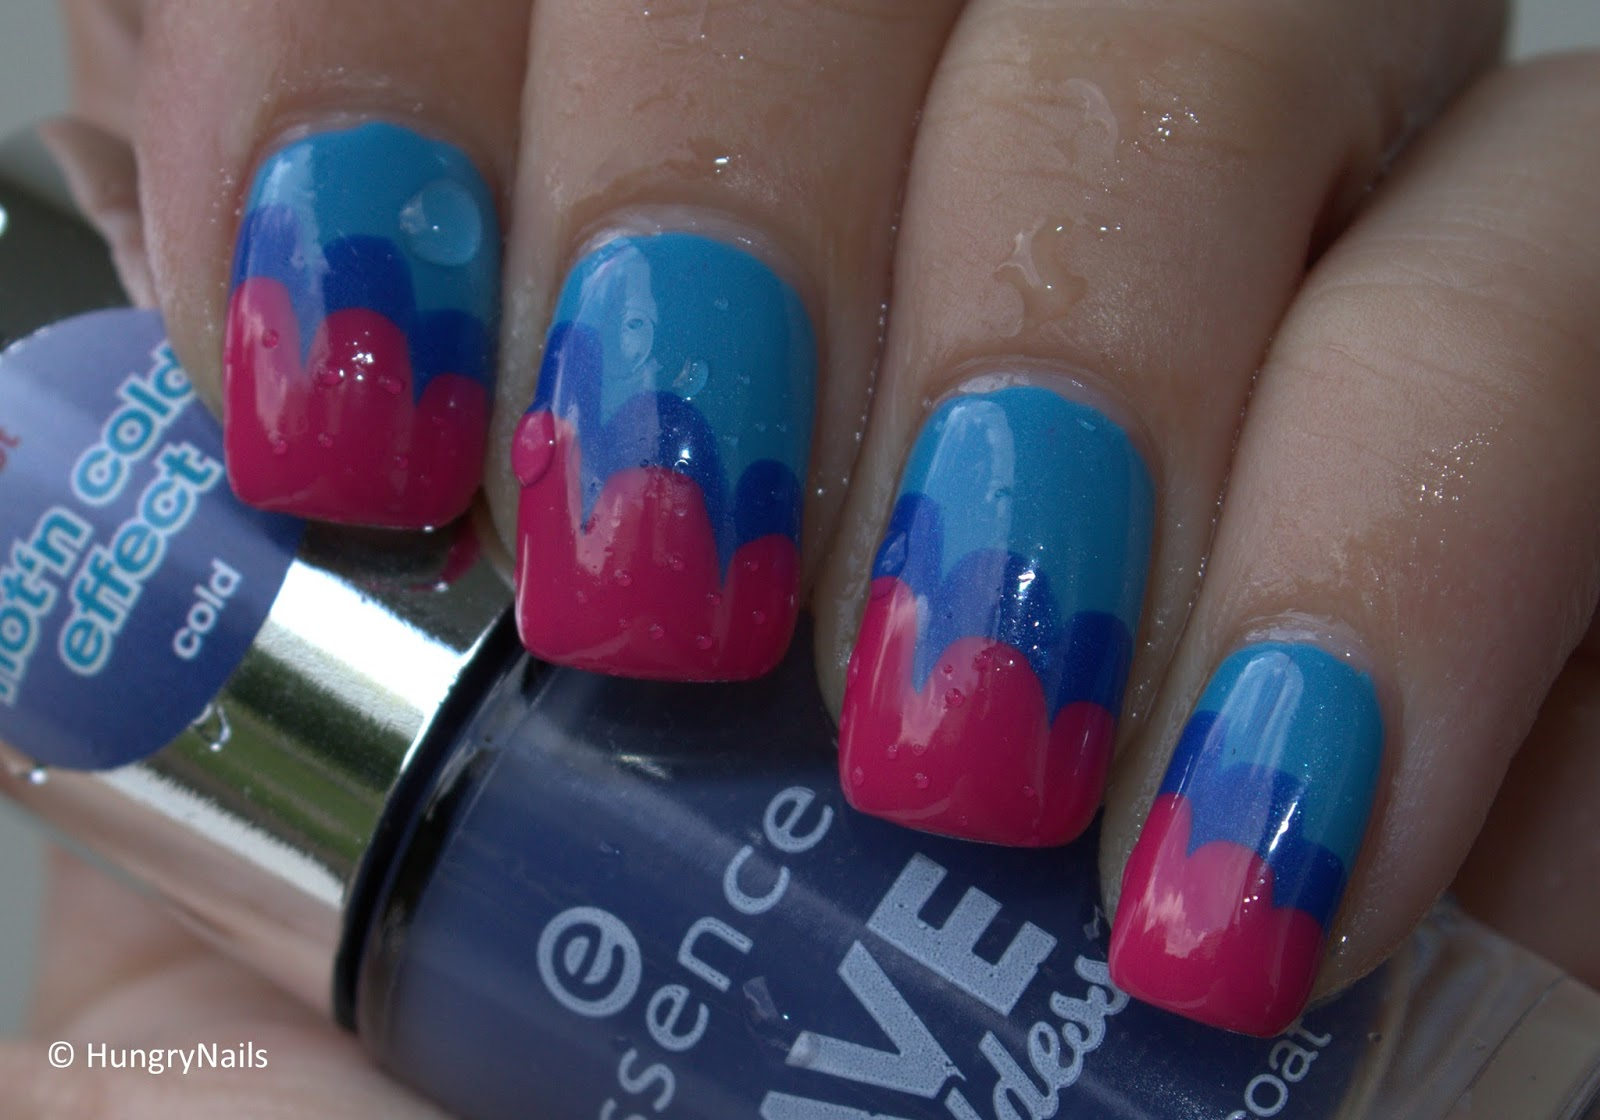 http://hungrynails.blogspot.de/2014/06/review-essence-wave-goddess-trend.html